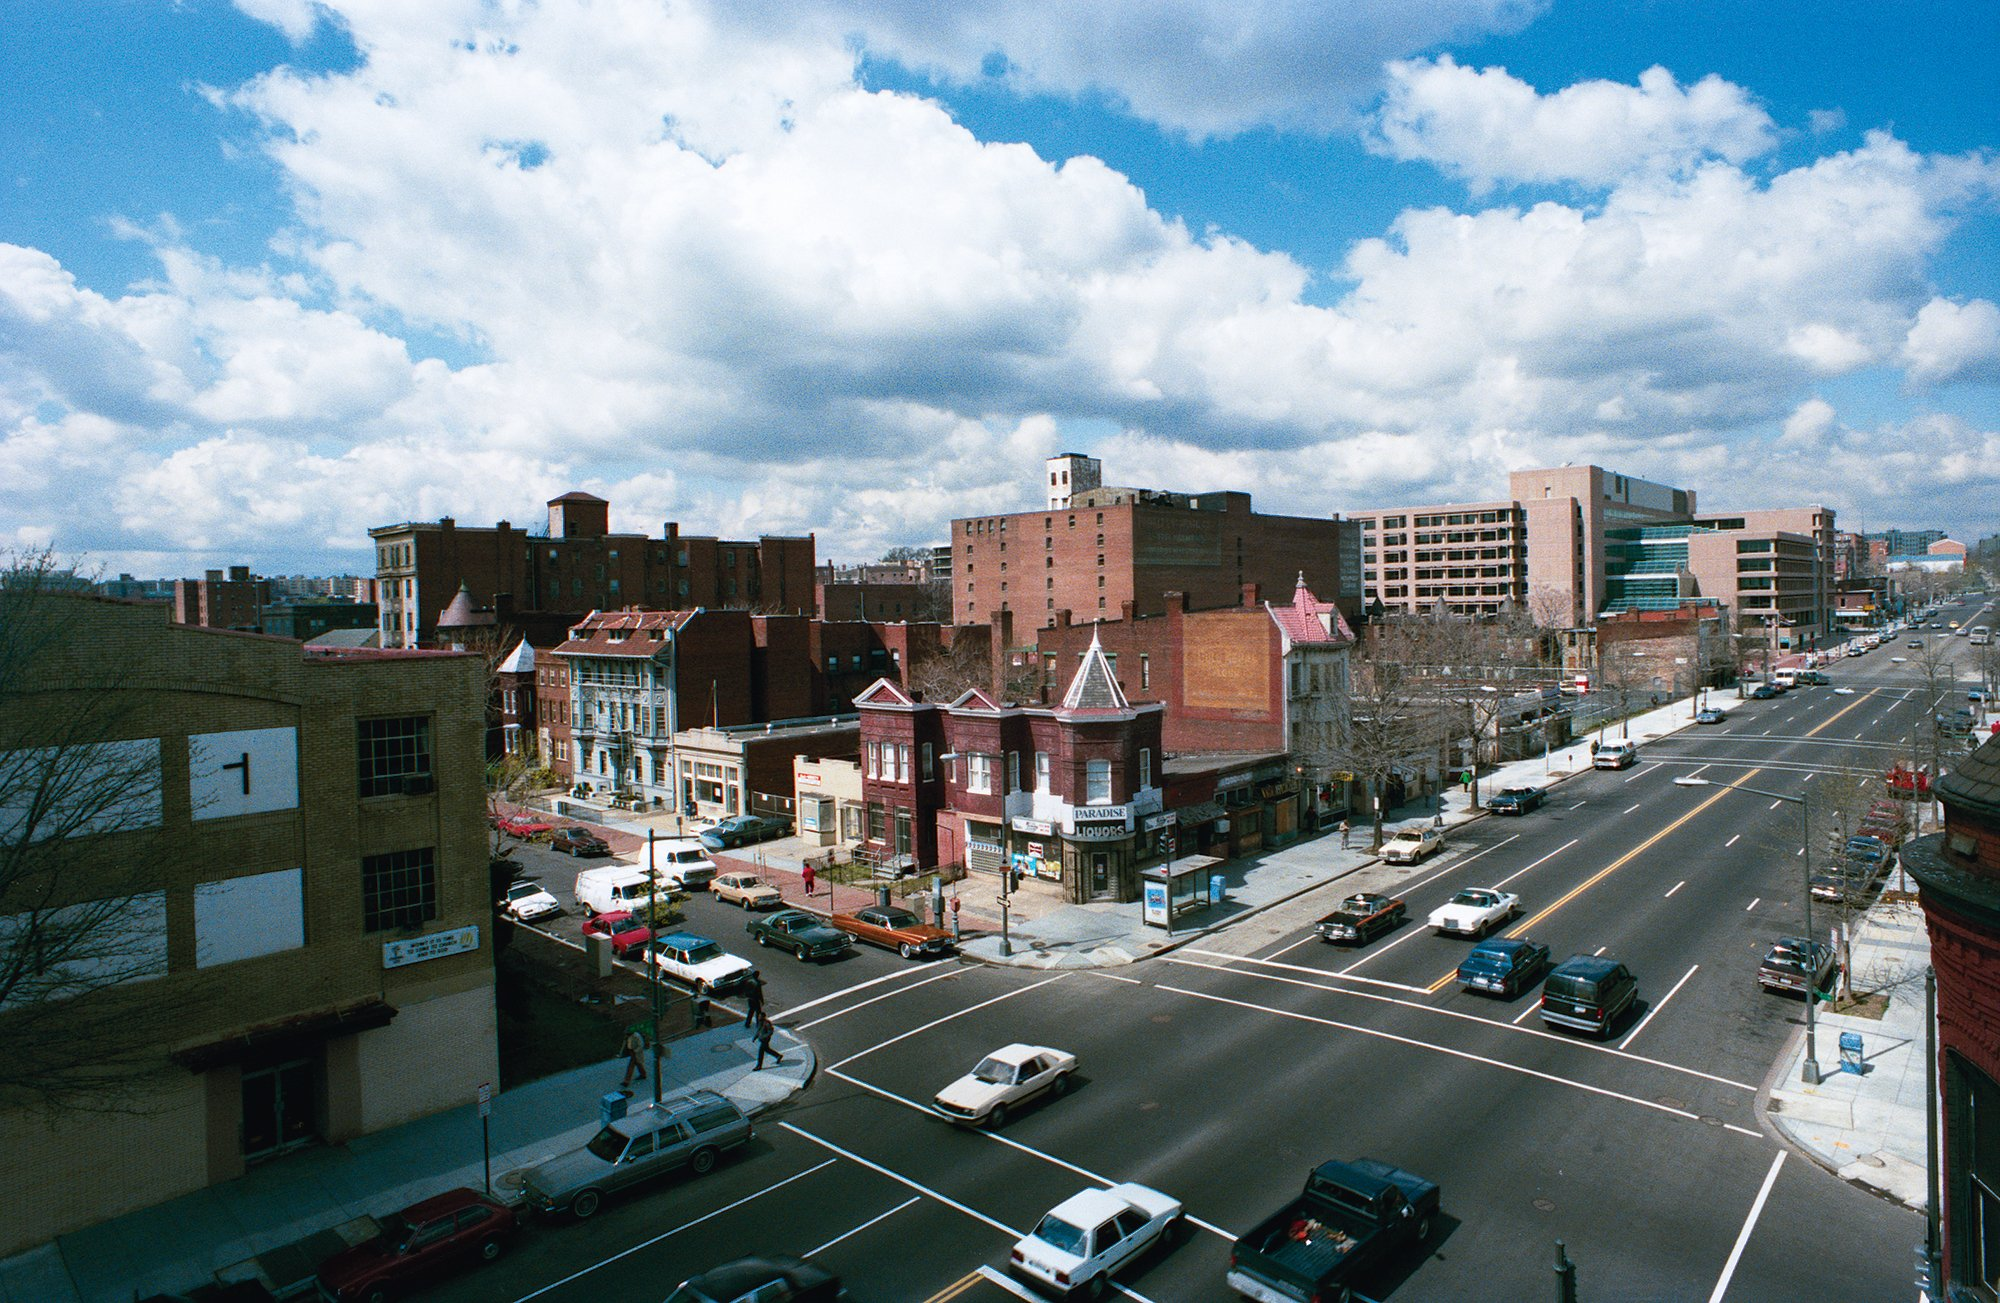 In the 1980s, while most of the street was still empty, open-air drug markets flourished at 14th and T (above) as well as one block south. Photograph by Michael J. Horsley.